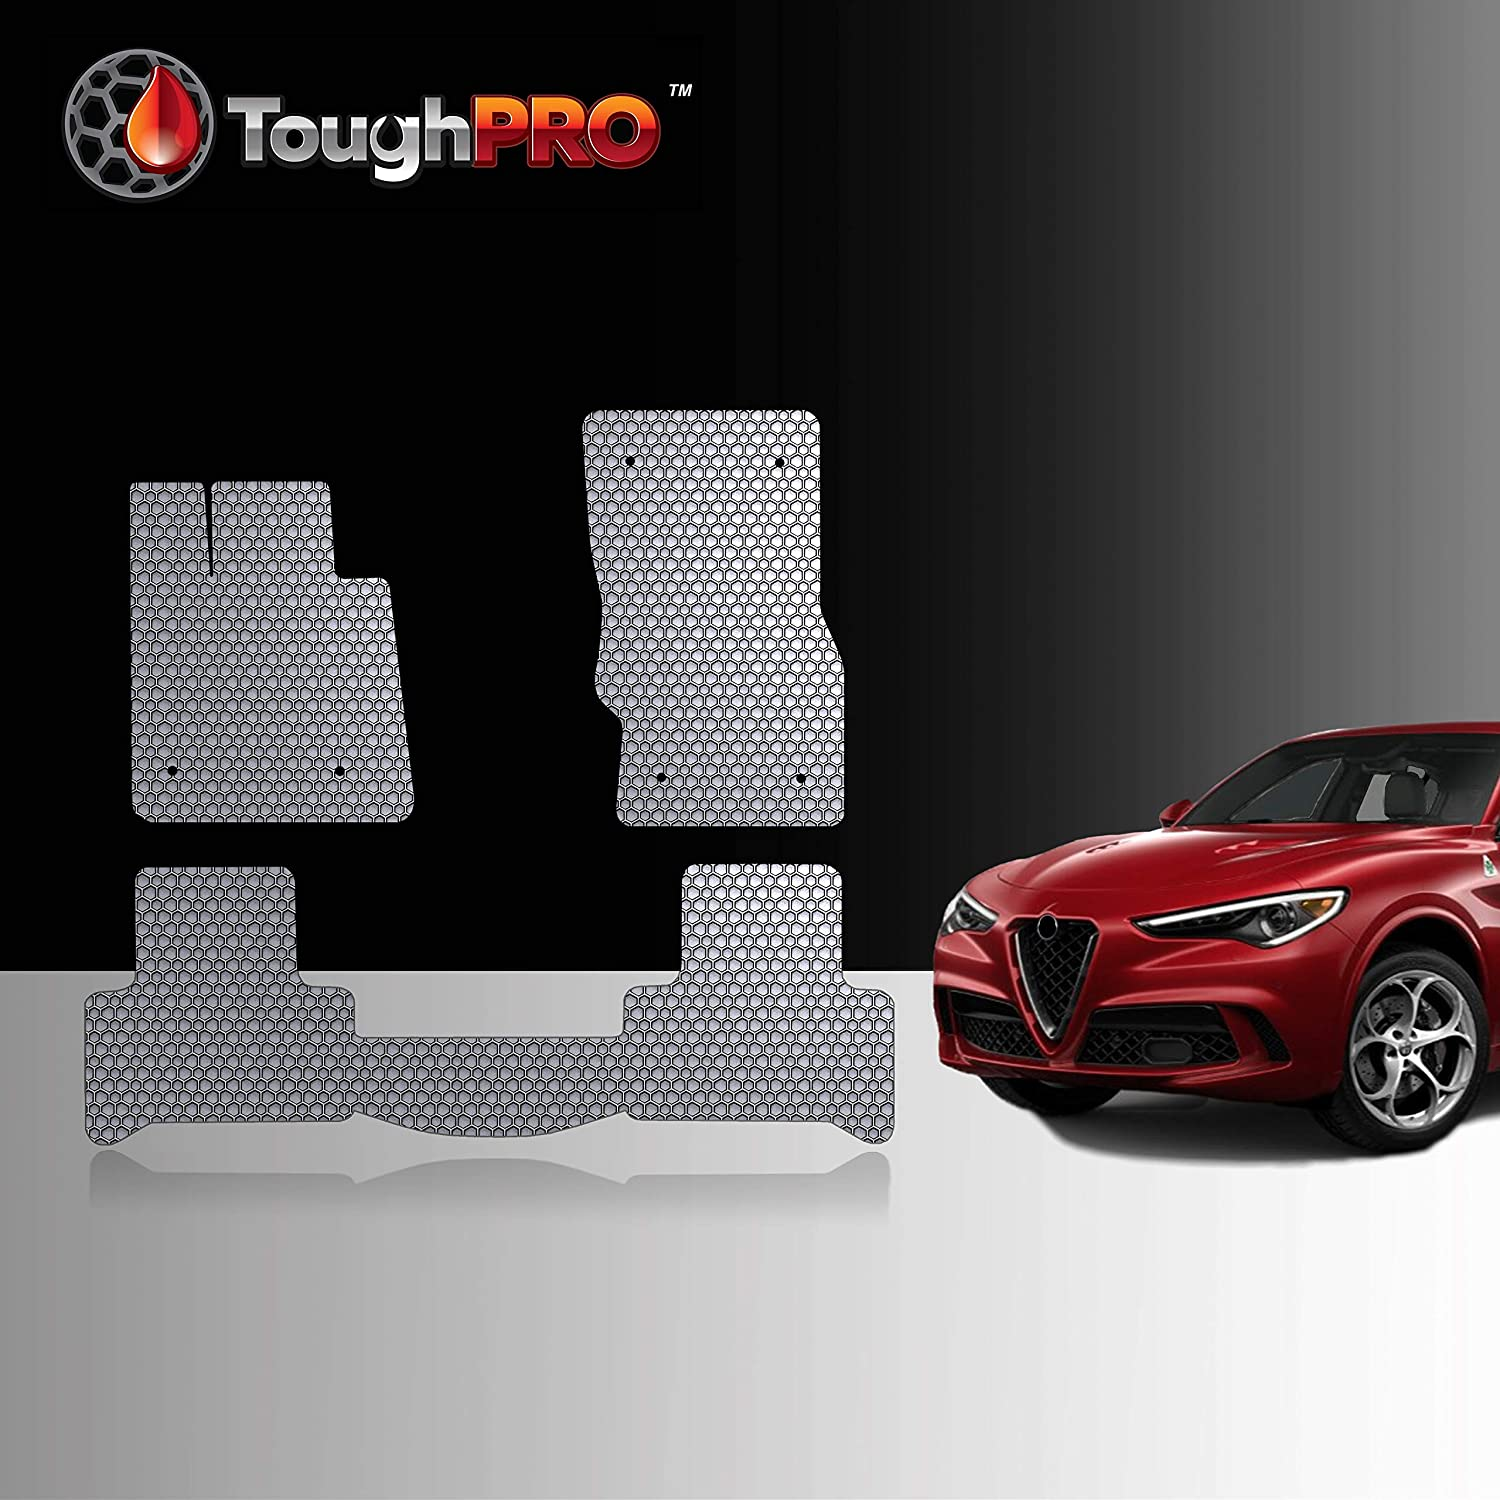 TOUGHPRO Floor Mat Accessories Set Compatible with Alfa Romeo Stelvio - All Weather - Heavy Duty - (Made in USA) - Gray Rubber - 2018, 2019, 2020 (Front Row + 2nd Row)